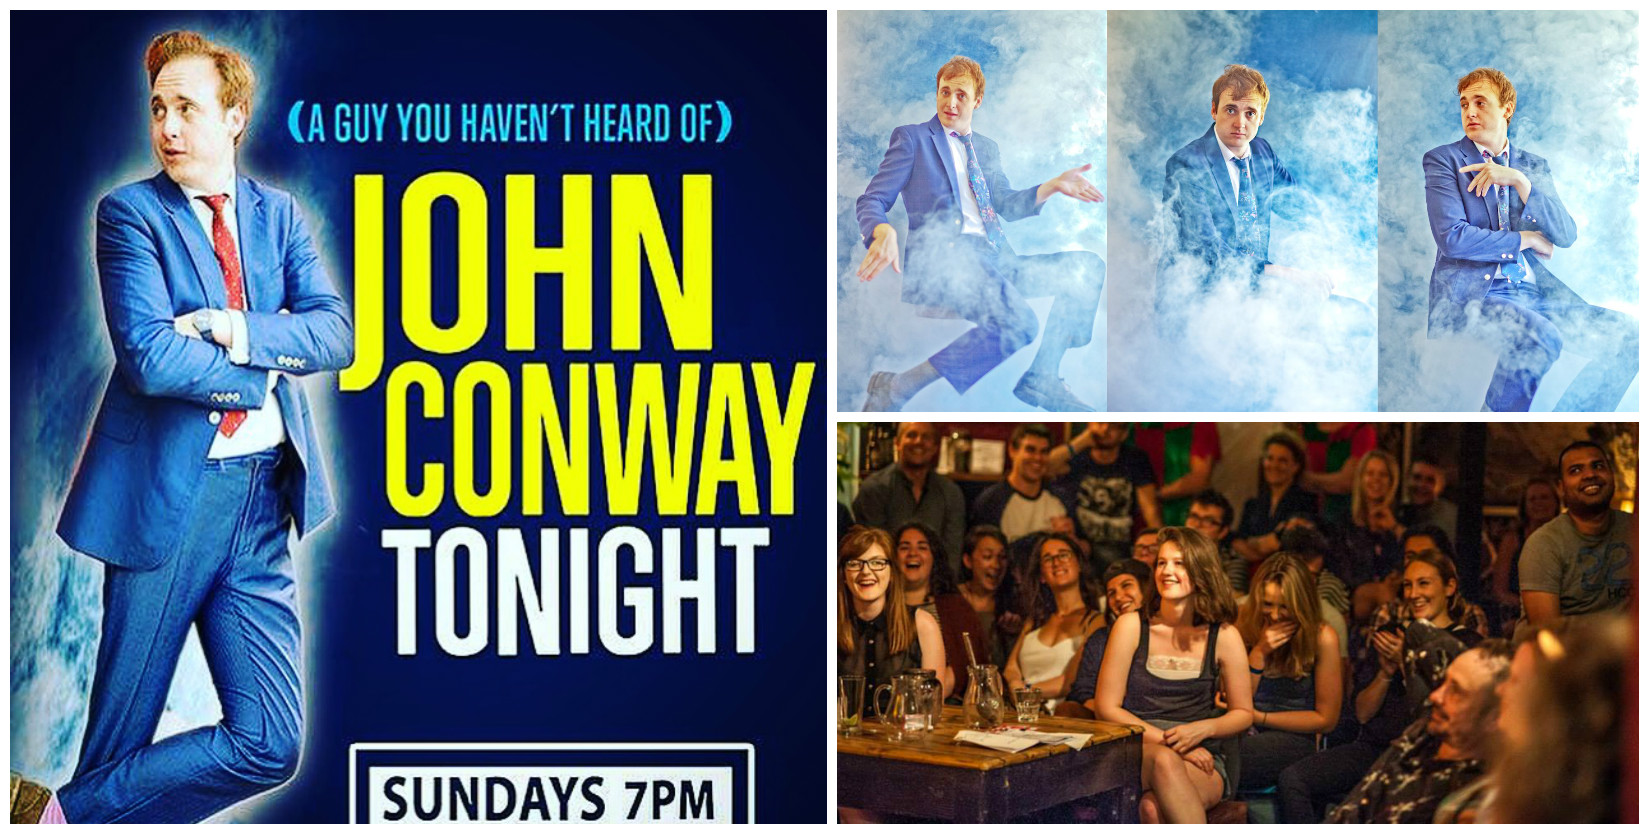 John Conway Tonight Season 2, 31st January.